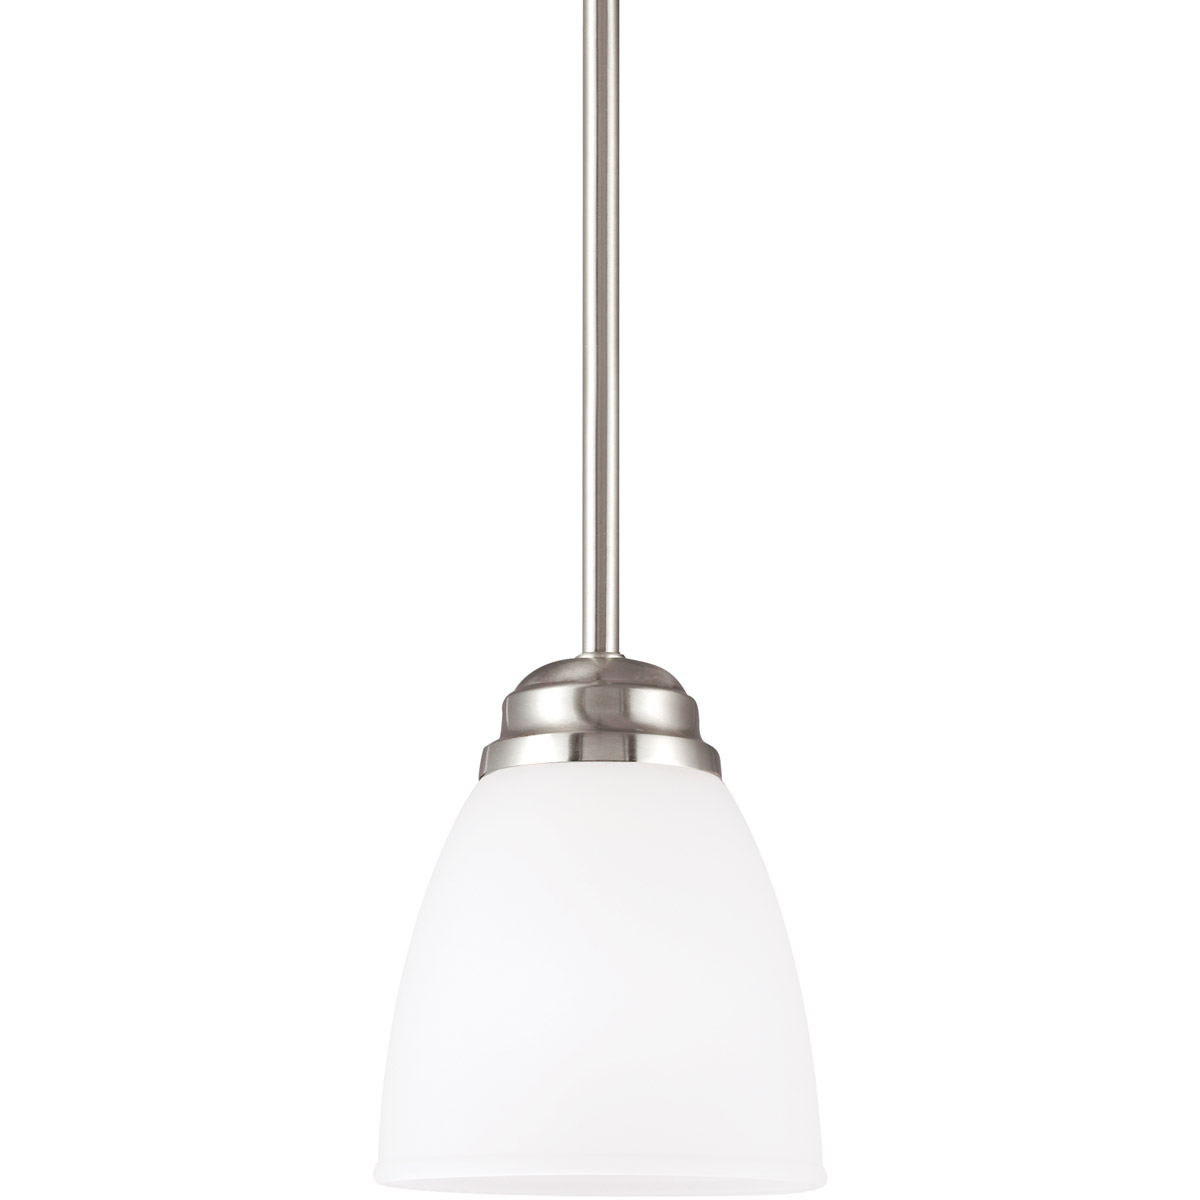 Sea Gull 6112401BLE-962 Northbrook 1 Light 6 inch Brushed Nickel Mini Pendant Ceiling Light in Fluorescent photo